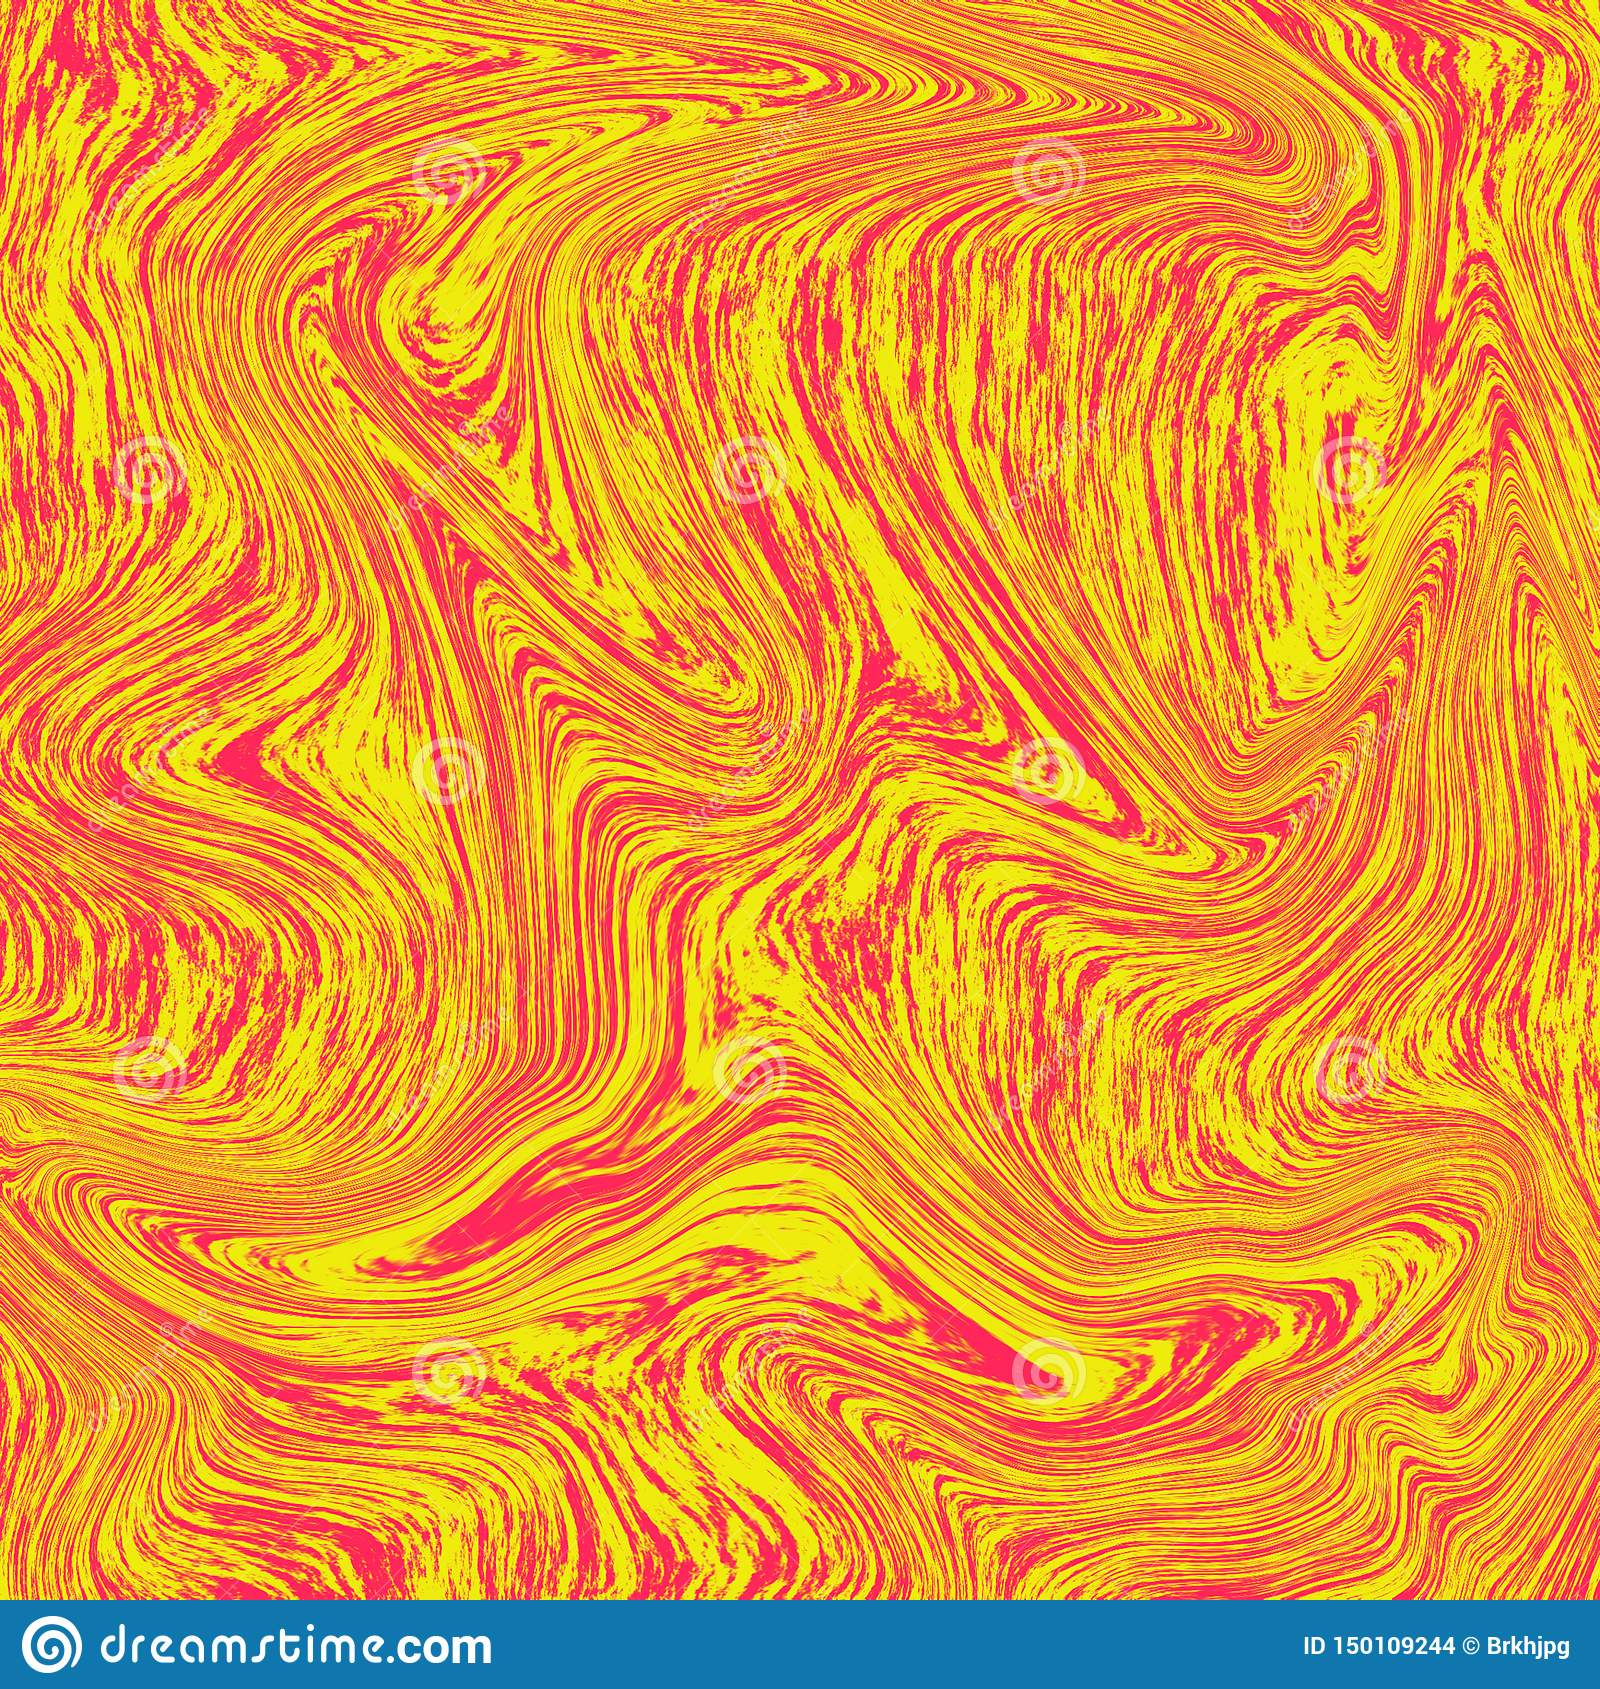 Lava Background Wonderful Liquid Marble The Combination Of Yellow And Red Orange Wallpaper Liquid Abstract Stock Illustration Illustration Of Minimal Business 150109244